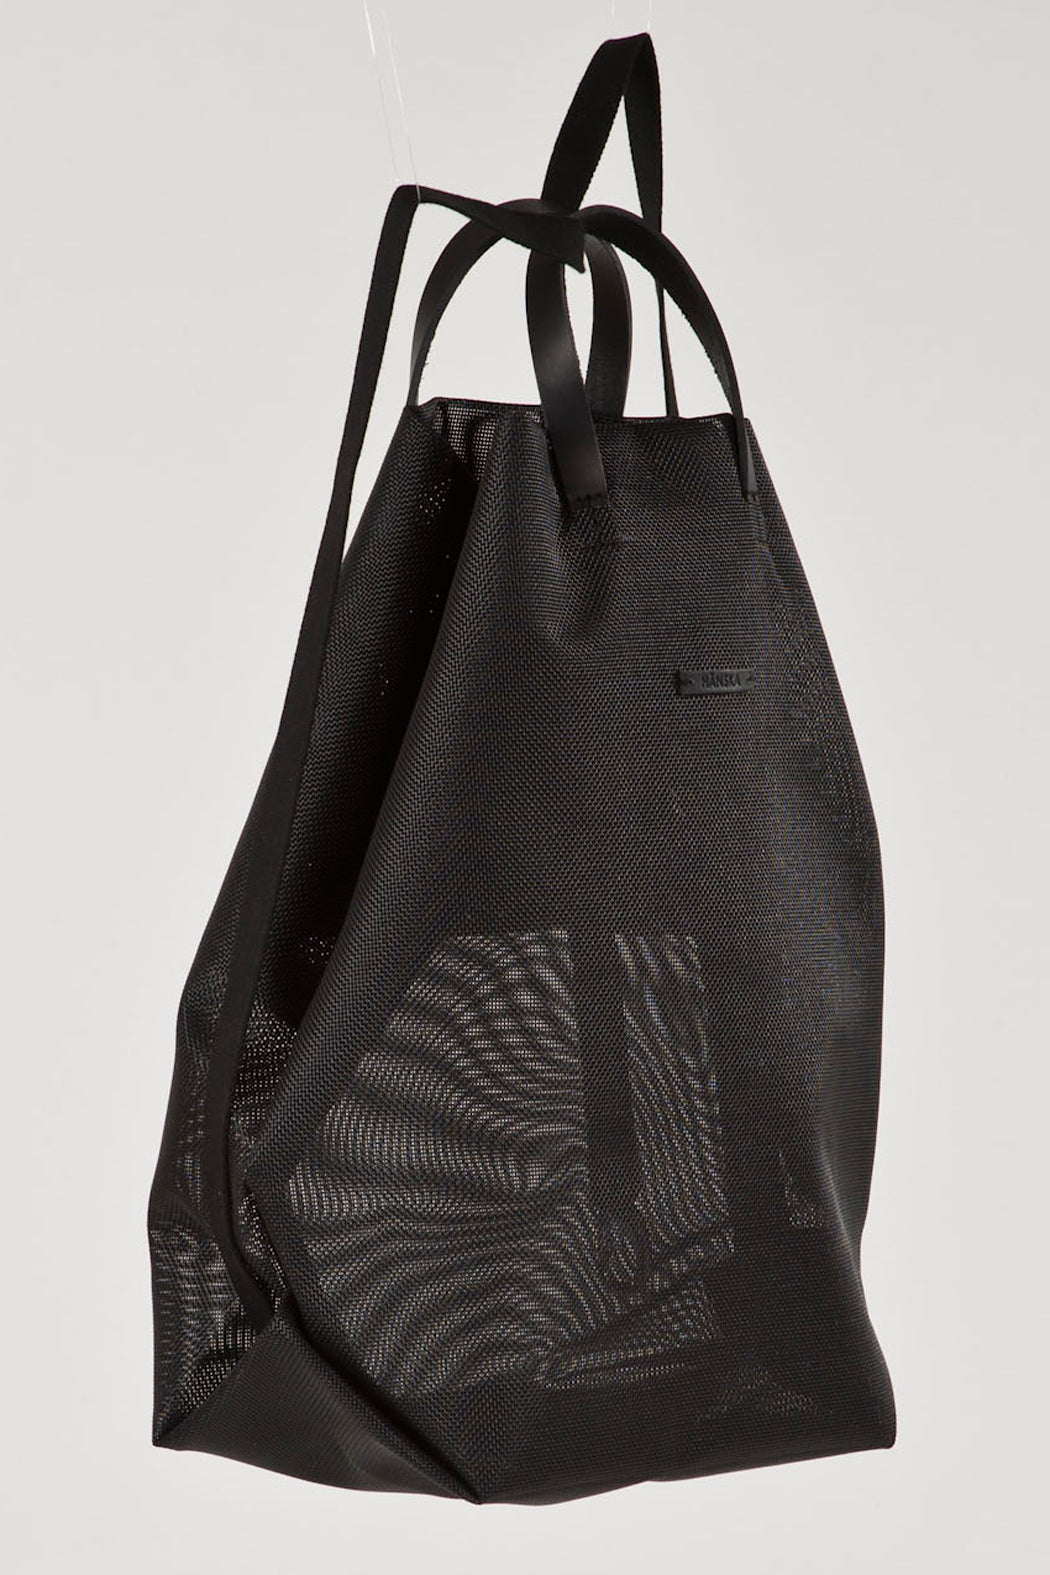 Black Rucksack Shopper by Hänska